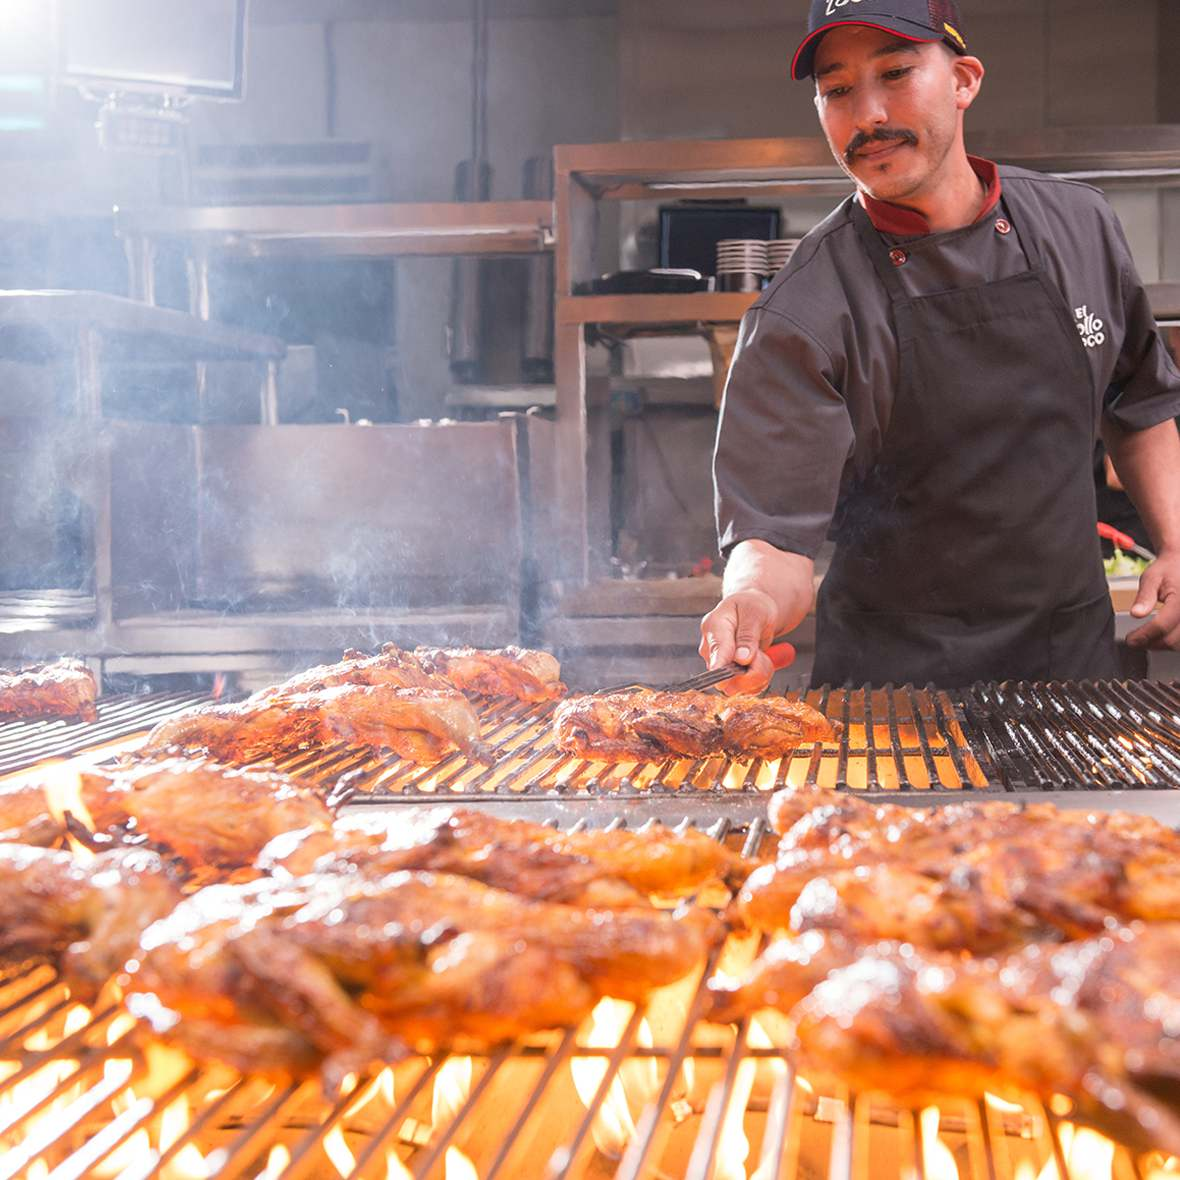 Grill master cooks citrus-marinated chicken over open flame